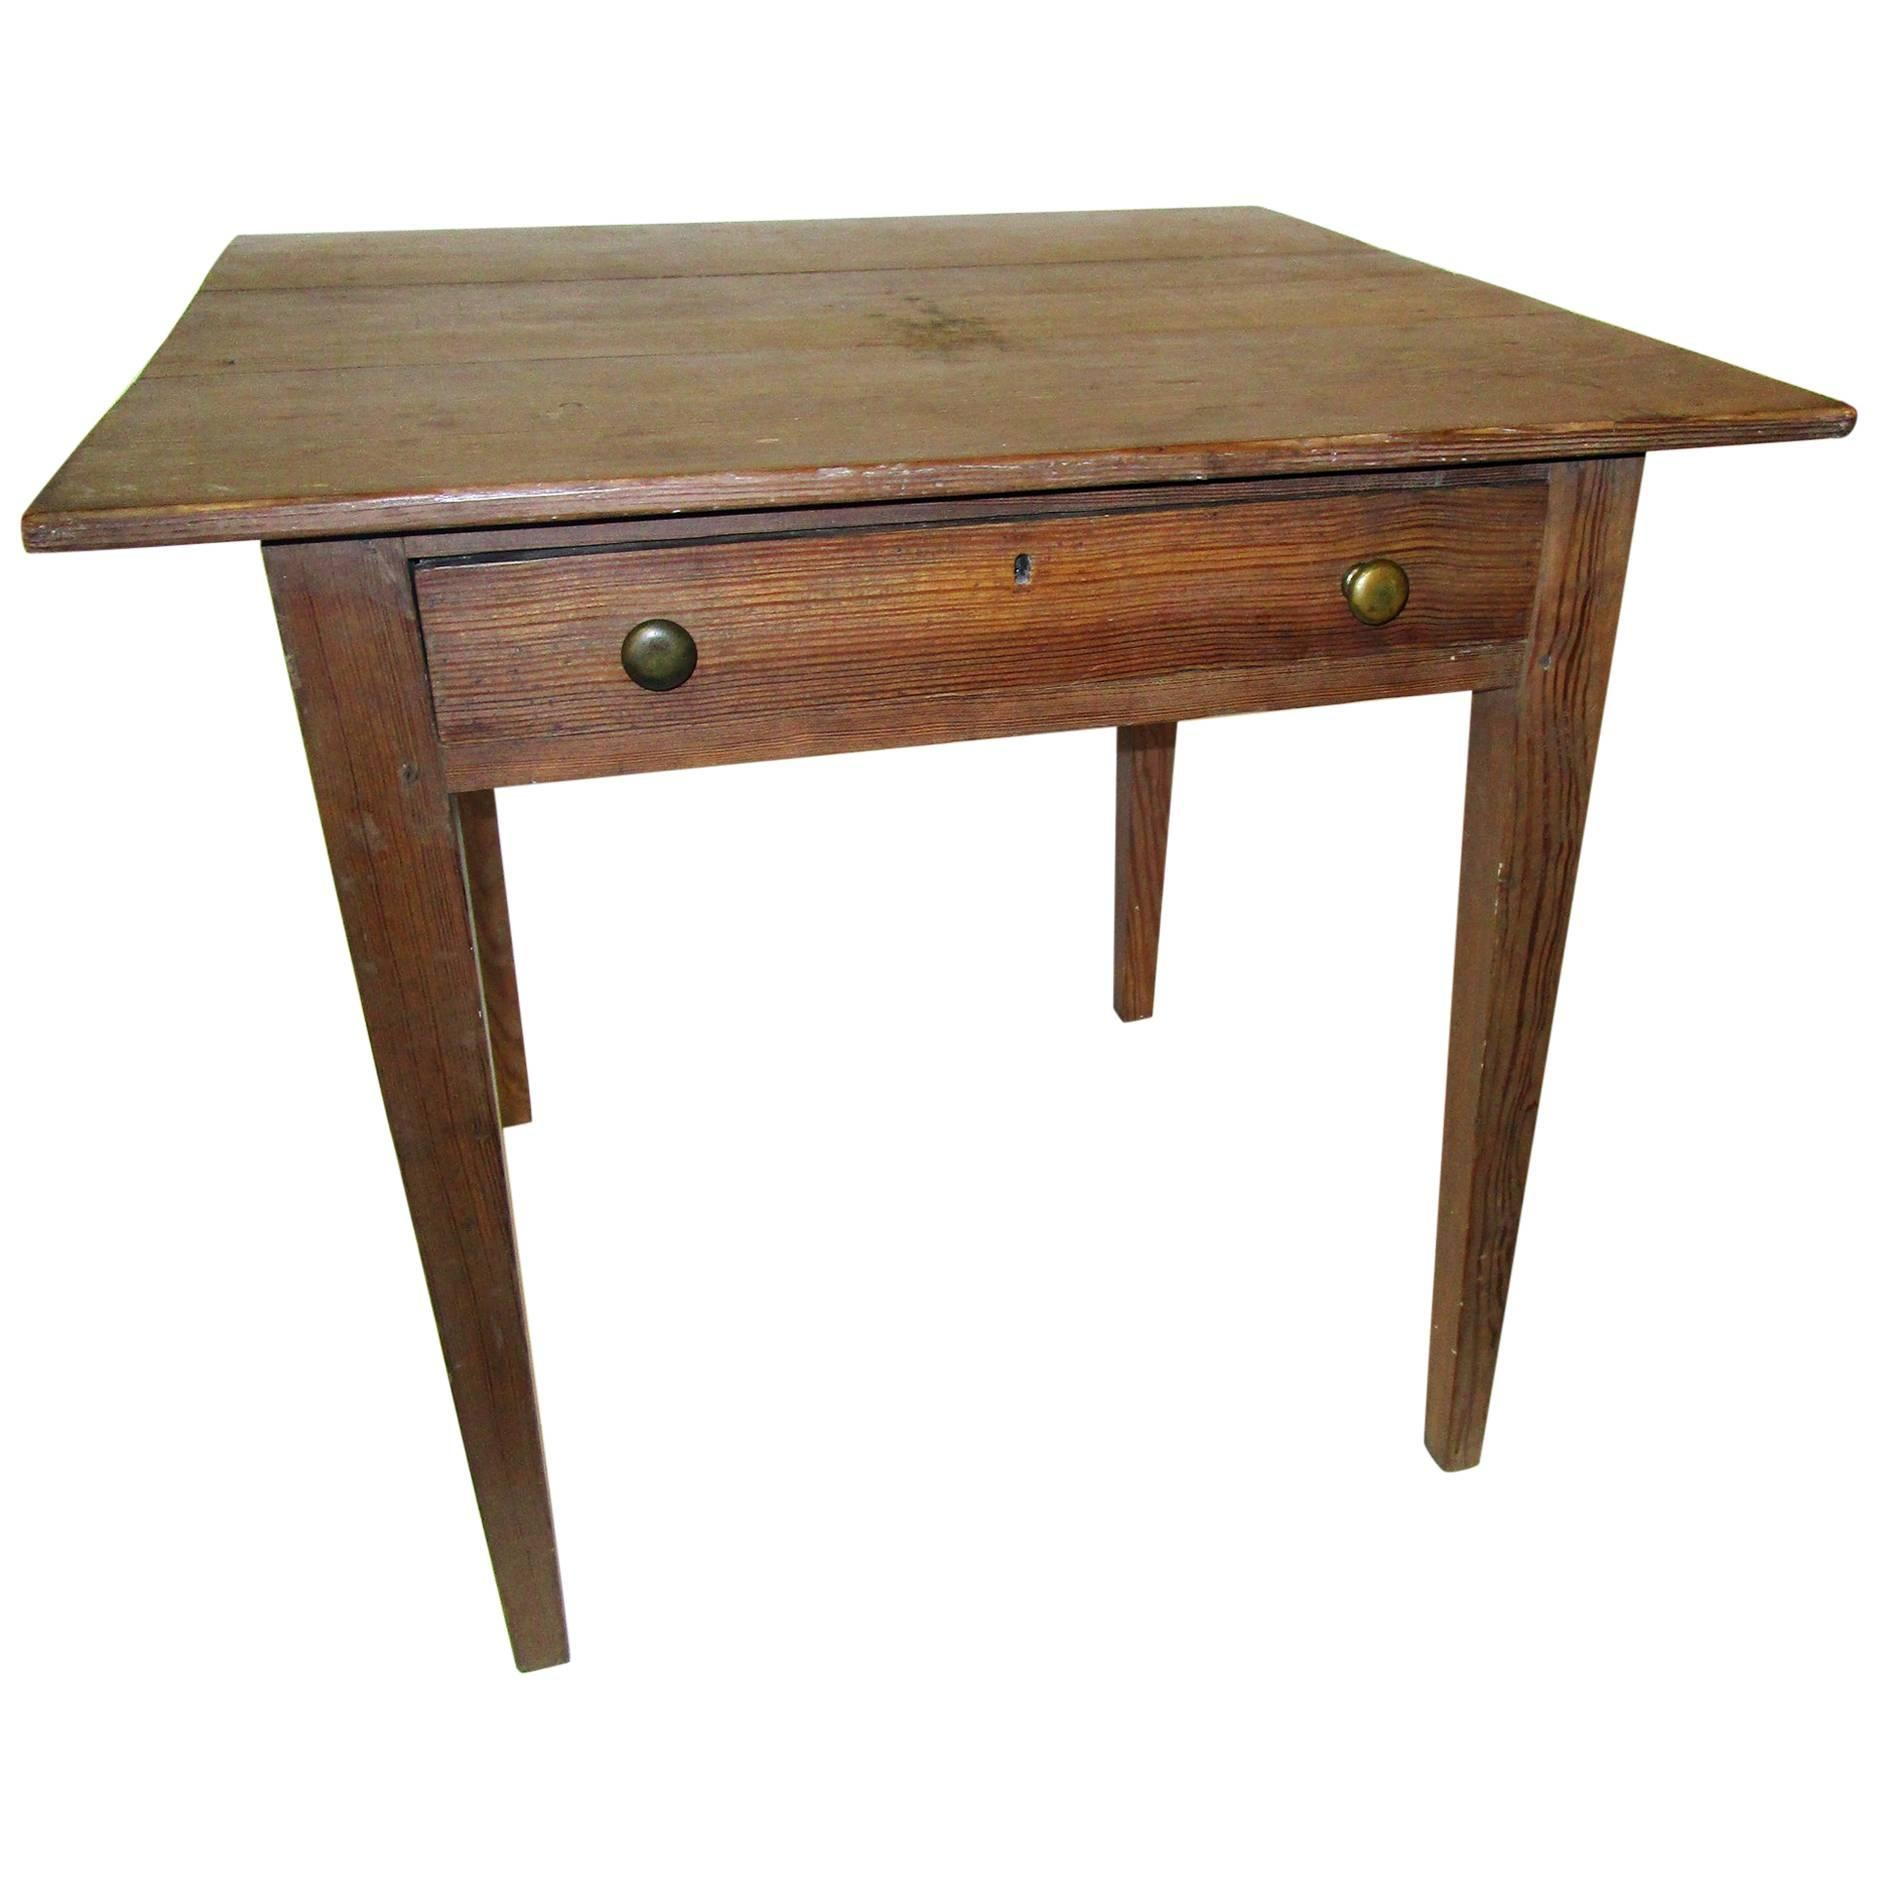 19th century American Primitive Cypress Work Table